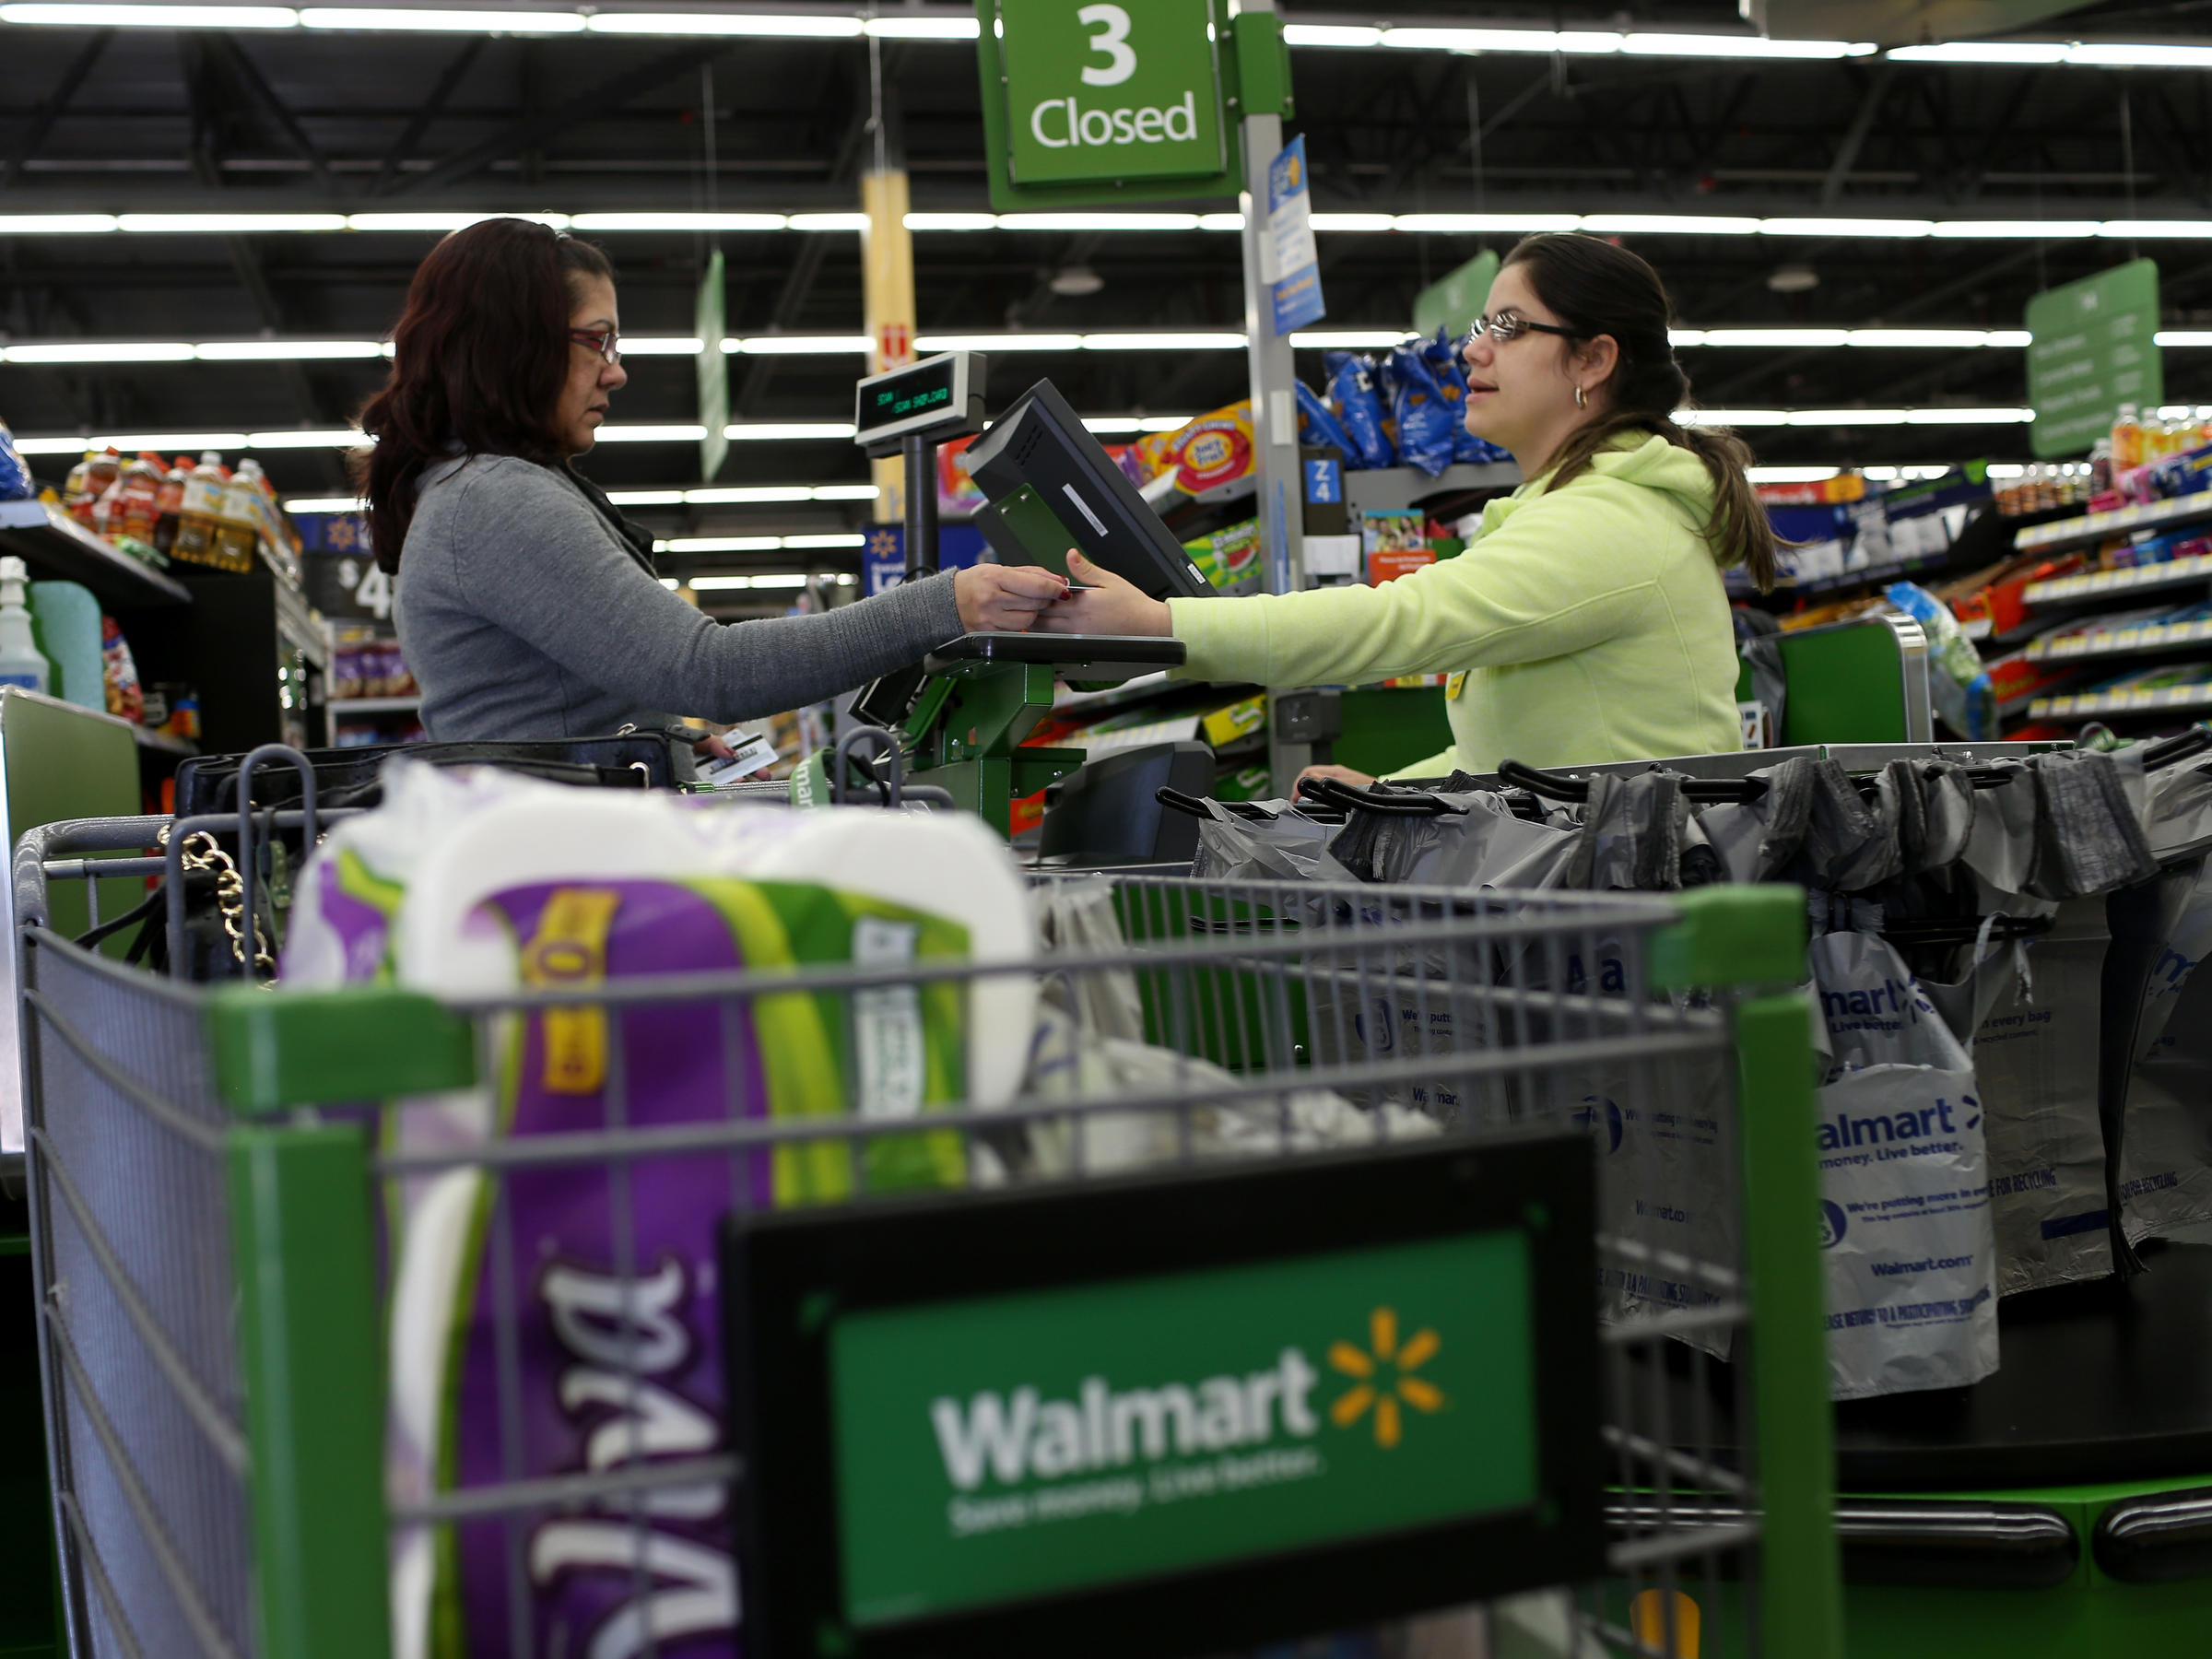 As Store Layoffs Mount, Retail Lags Other Sectors In Retraining